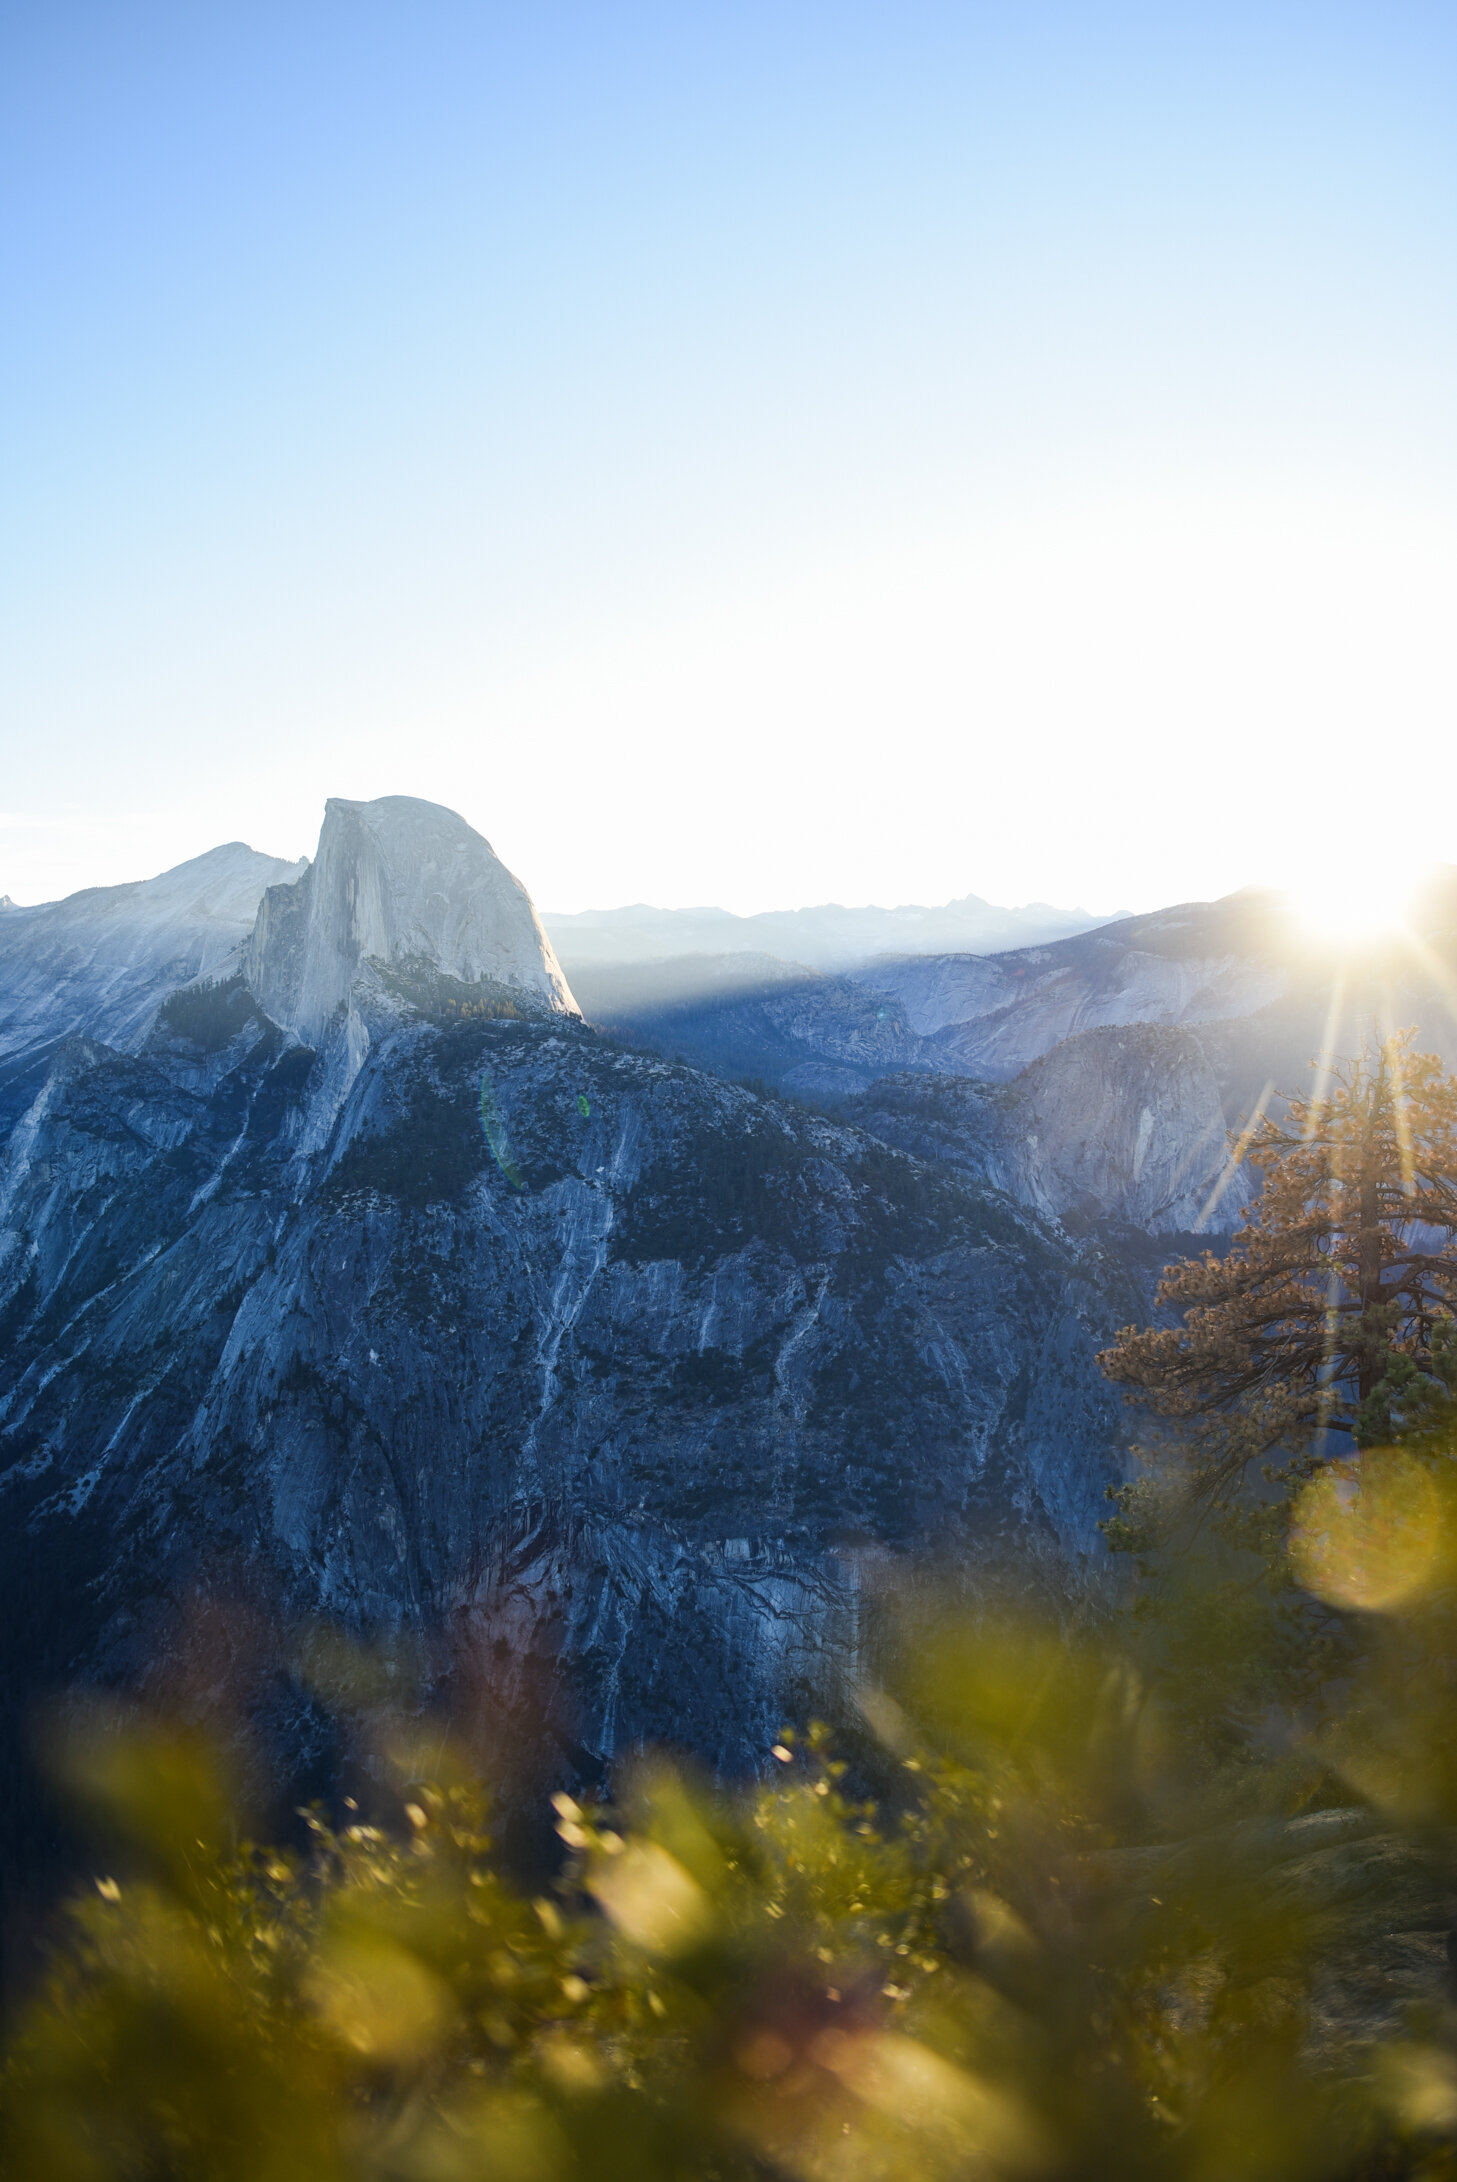 I have always been in awe of the natural phenomenon that is Alpenglow, and watching it highlight Half Dome from my favorite spot to watch the sunset in the Bay Area had me pinching myself. Crawling to the edge of the vantage point to capture the way this monument rolls down to the valley floor was well worth it. // Laura Morgan